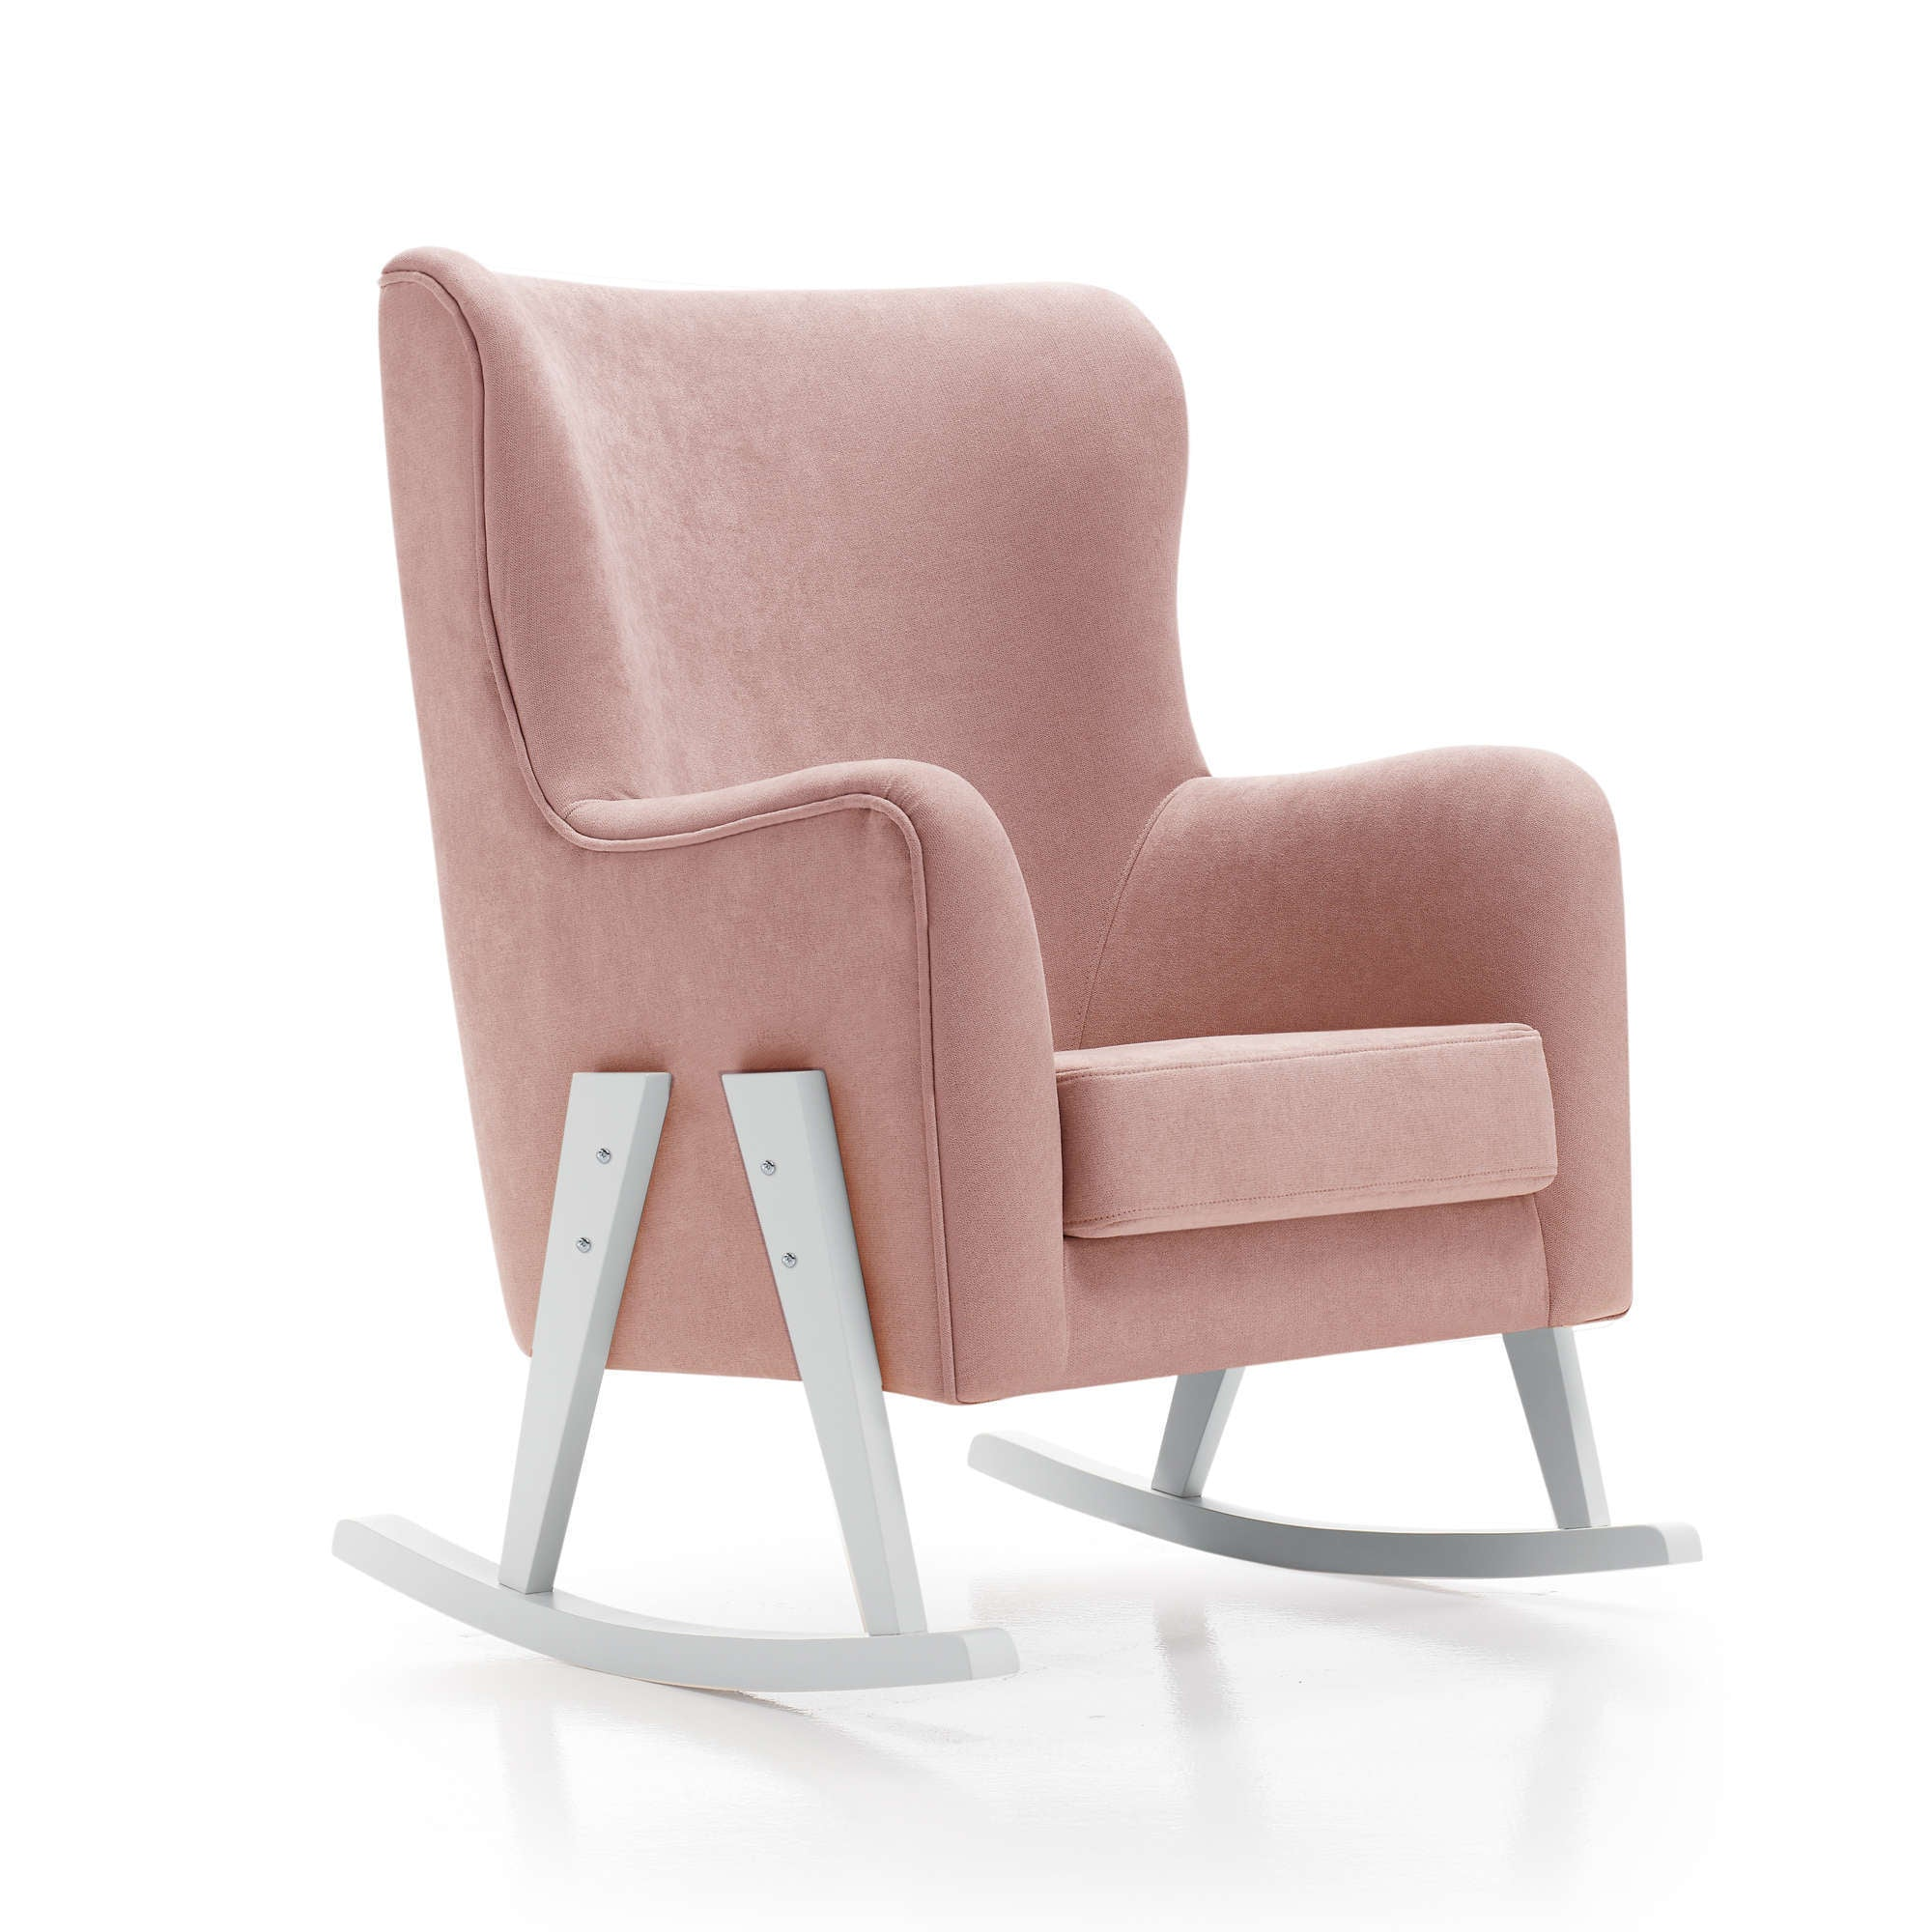 Alondra Glam Fabric Nursing Chair - Pink with White Legs